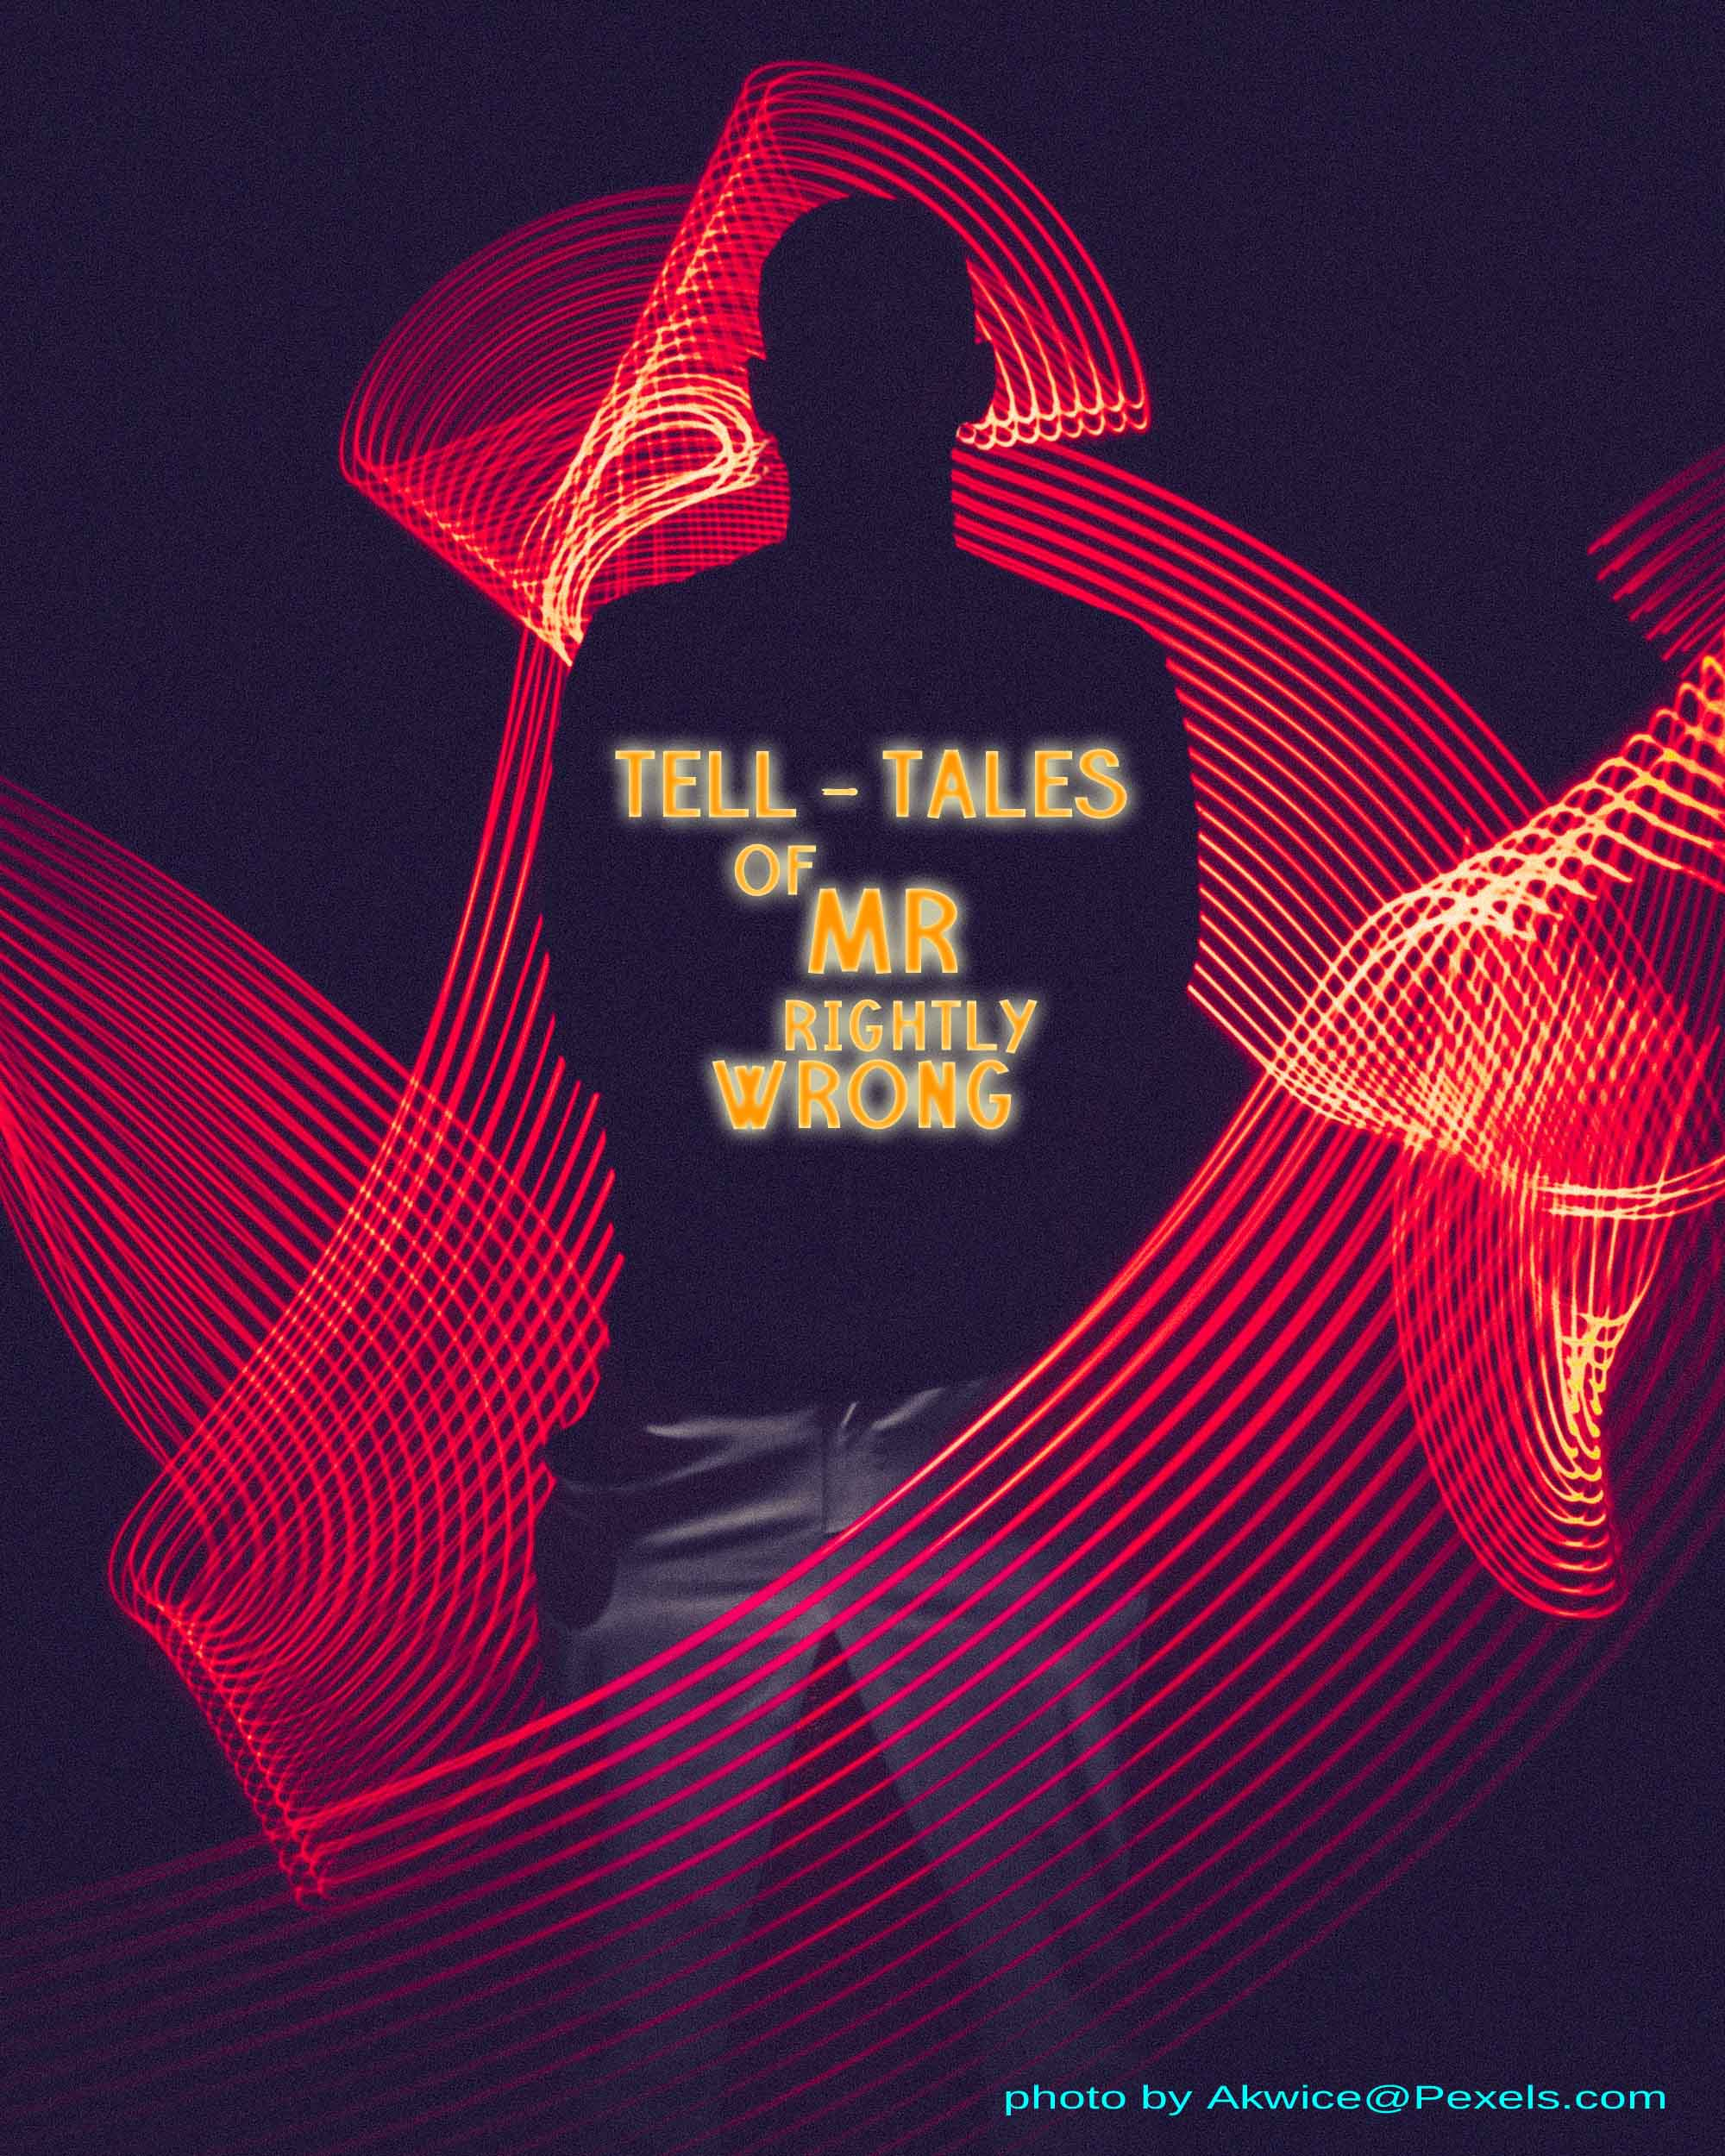 Tell-tales of Mr Rightly Wrong